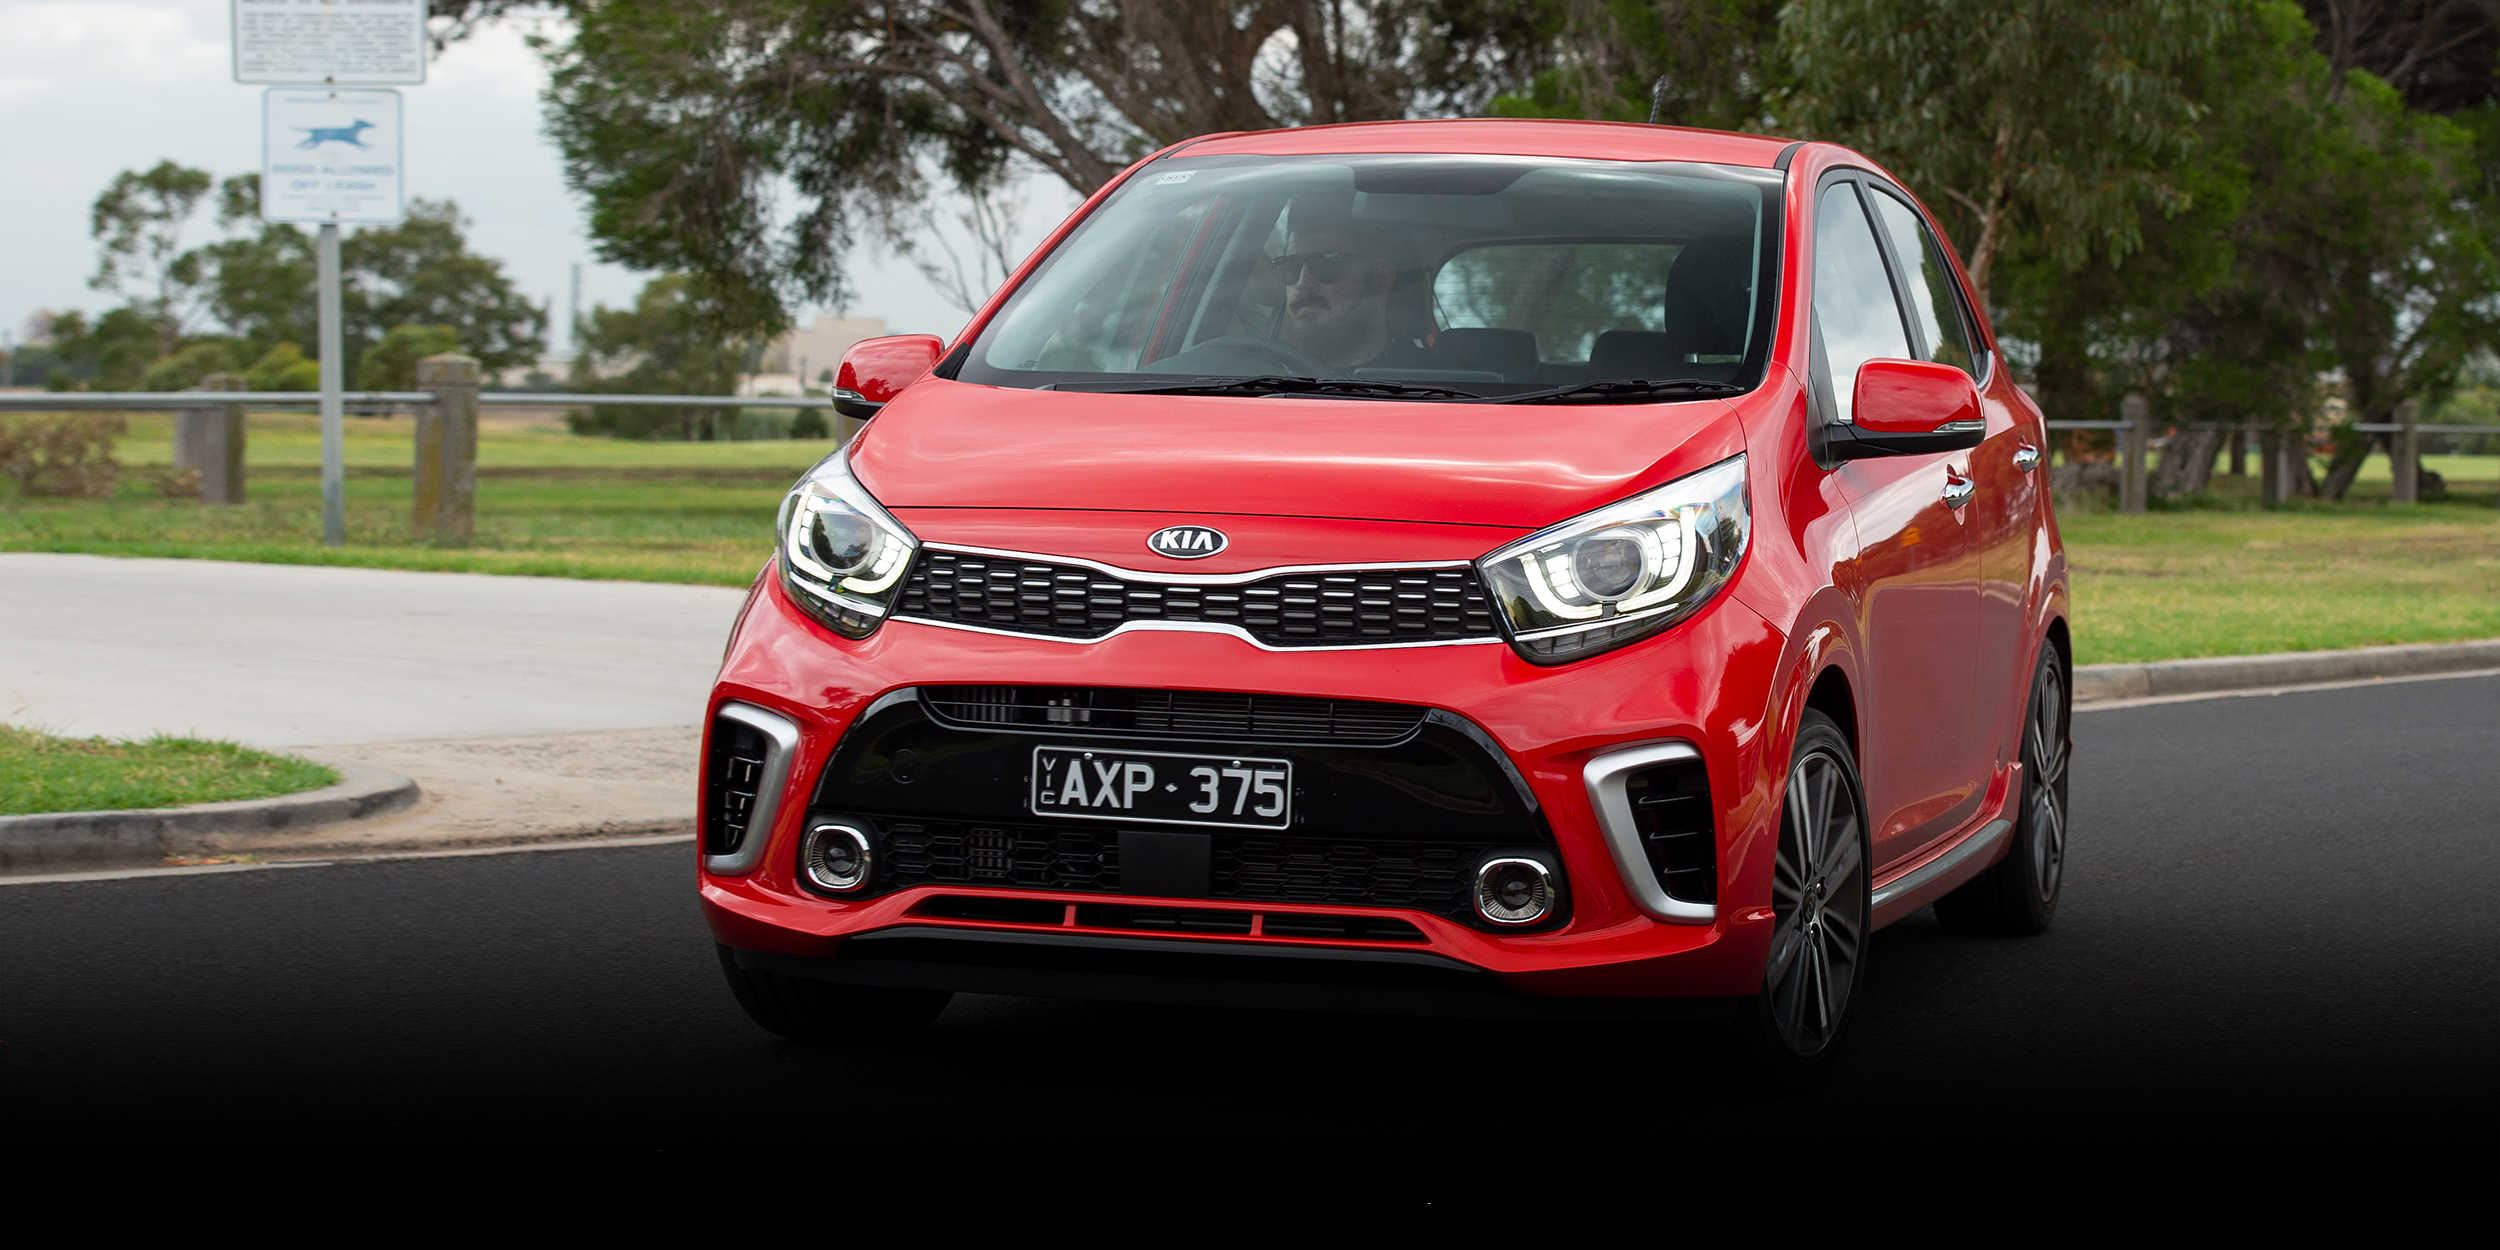 Kia Picanto 2021 Gt Line Performance, Release Date, Electric pertaining to 2021 Kia Soul Gt Interior Concept, Specification